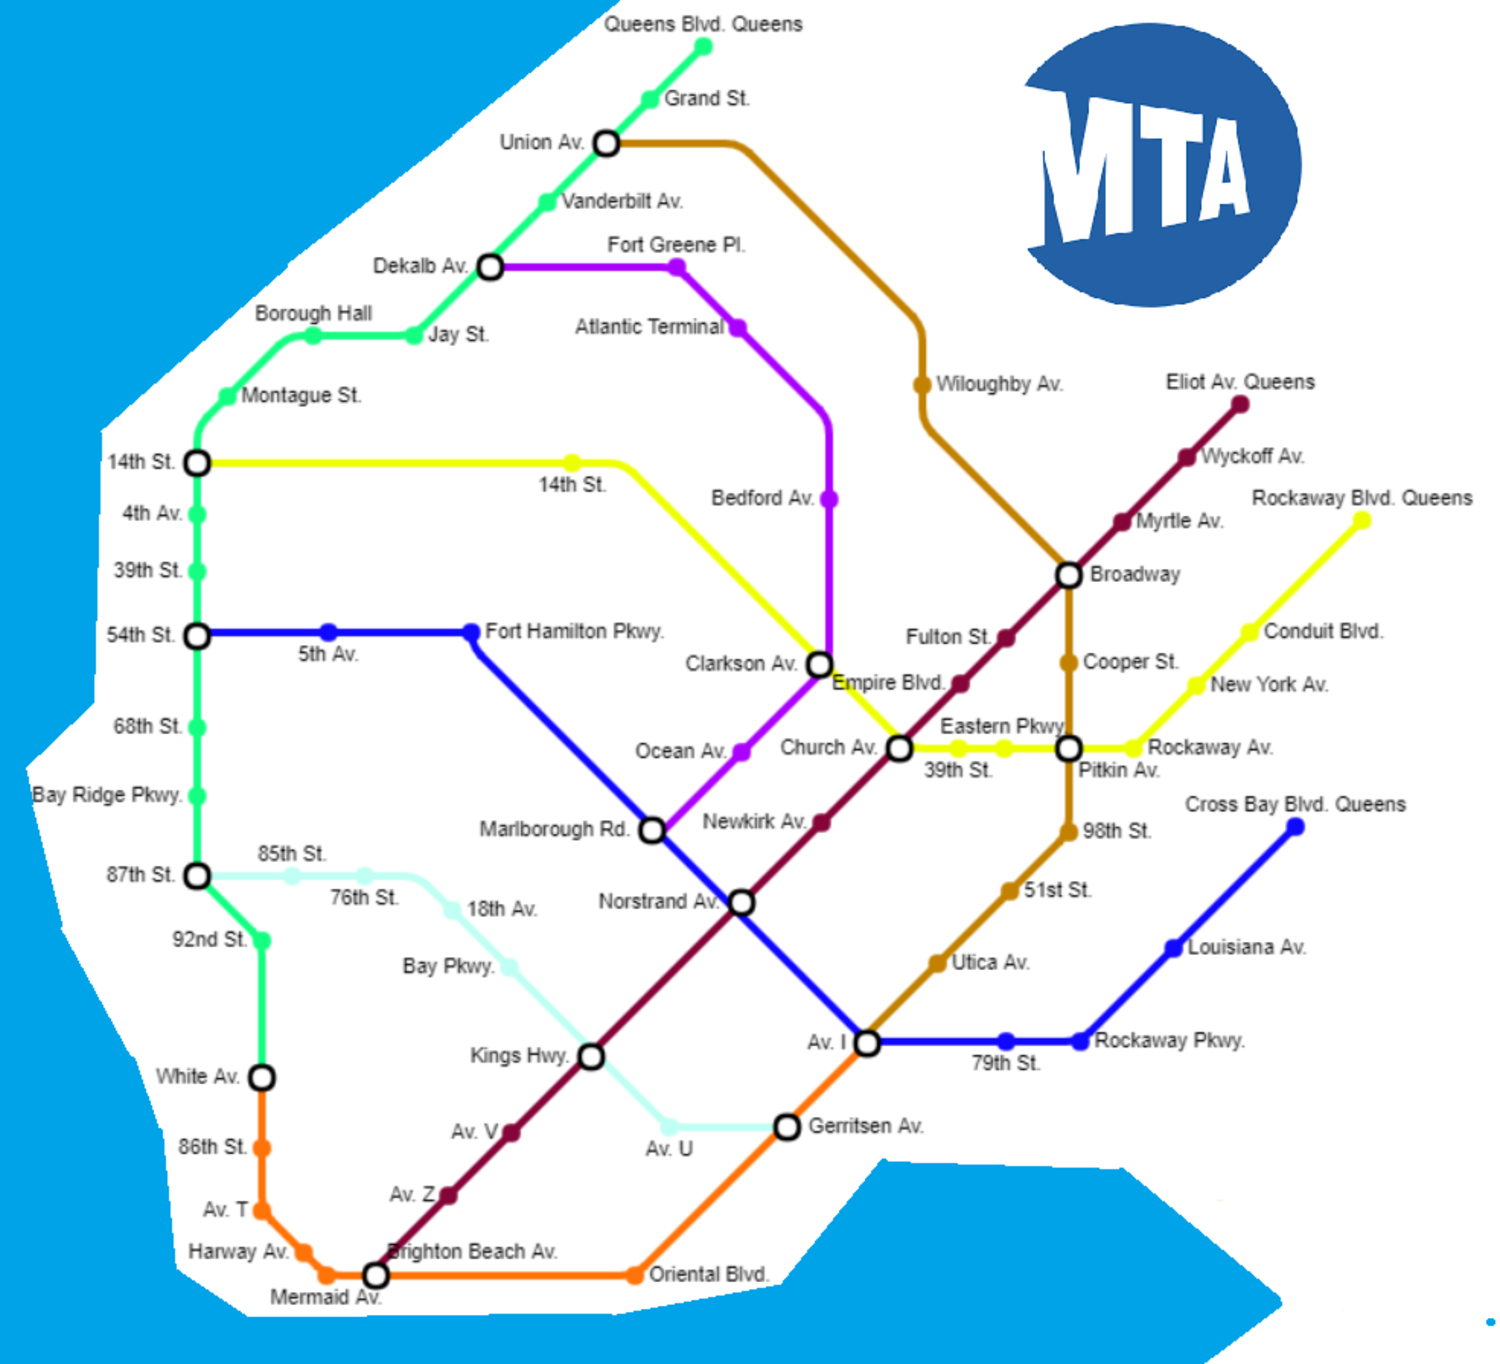 Heres Another New York City Subway Map This Time Showing